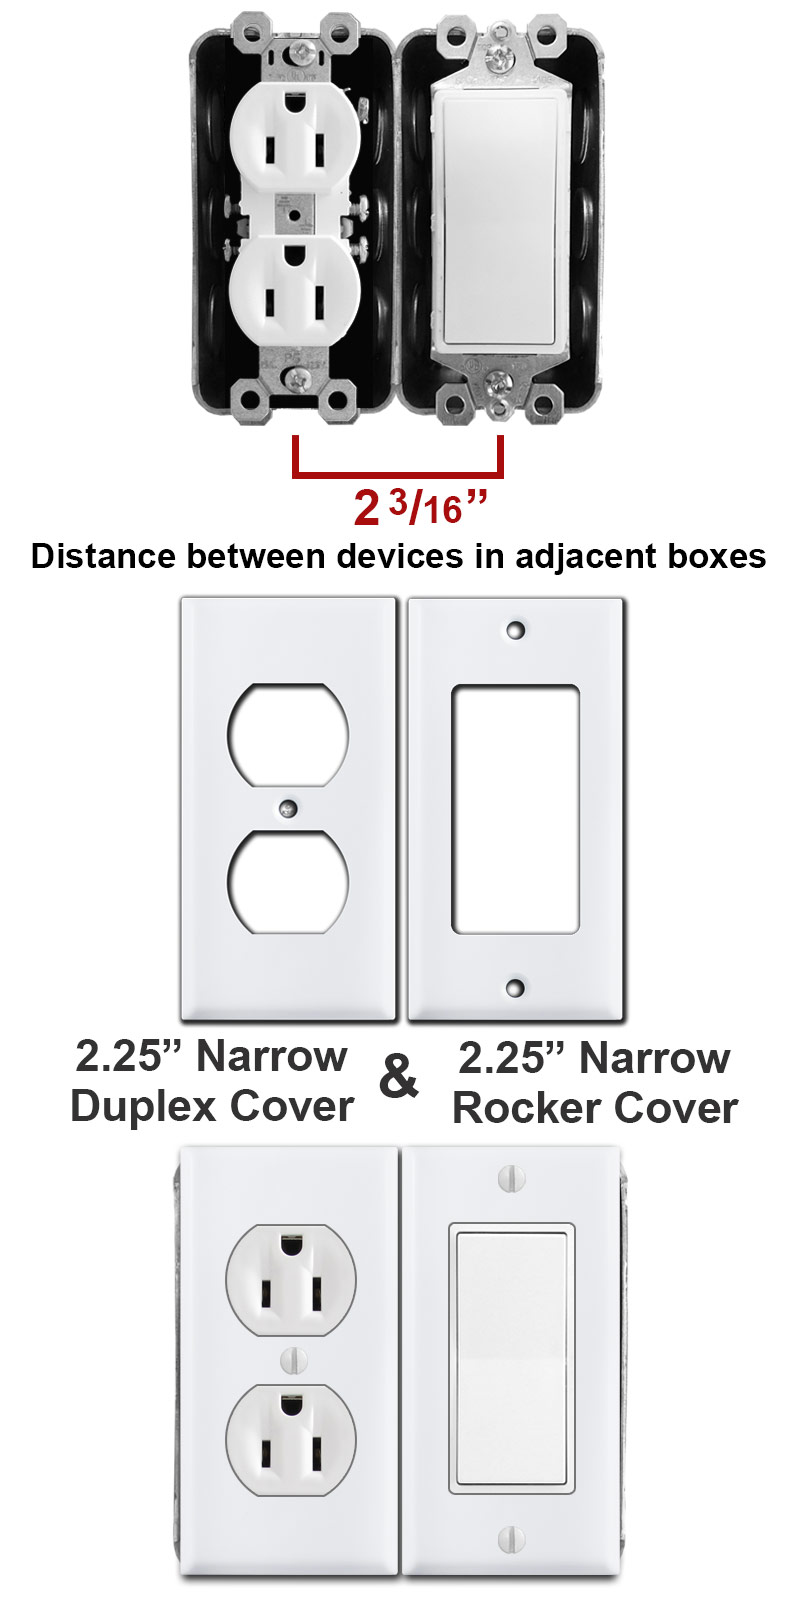 A Better Solution Is To Pair Together Two Narrow Cover Plates